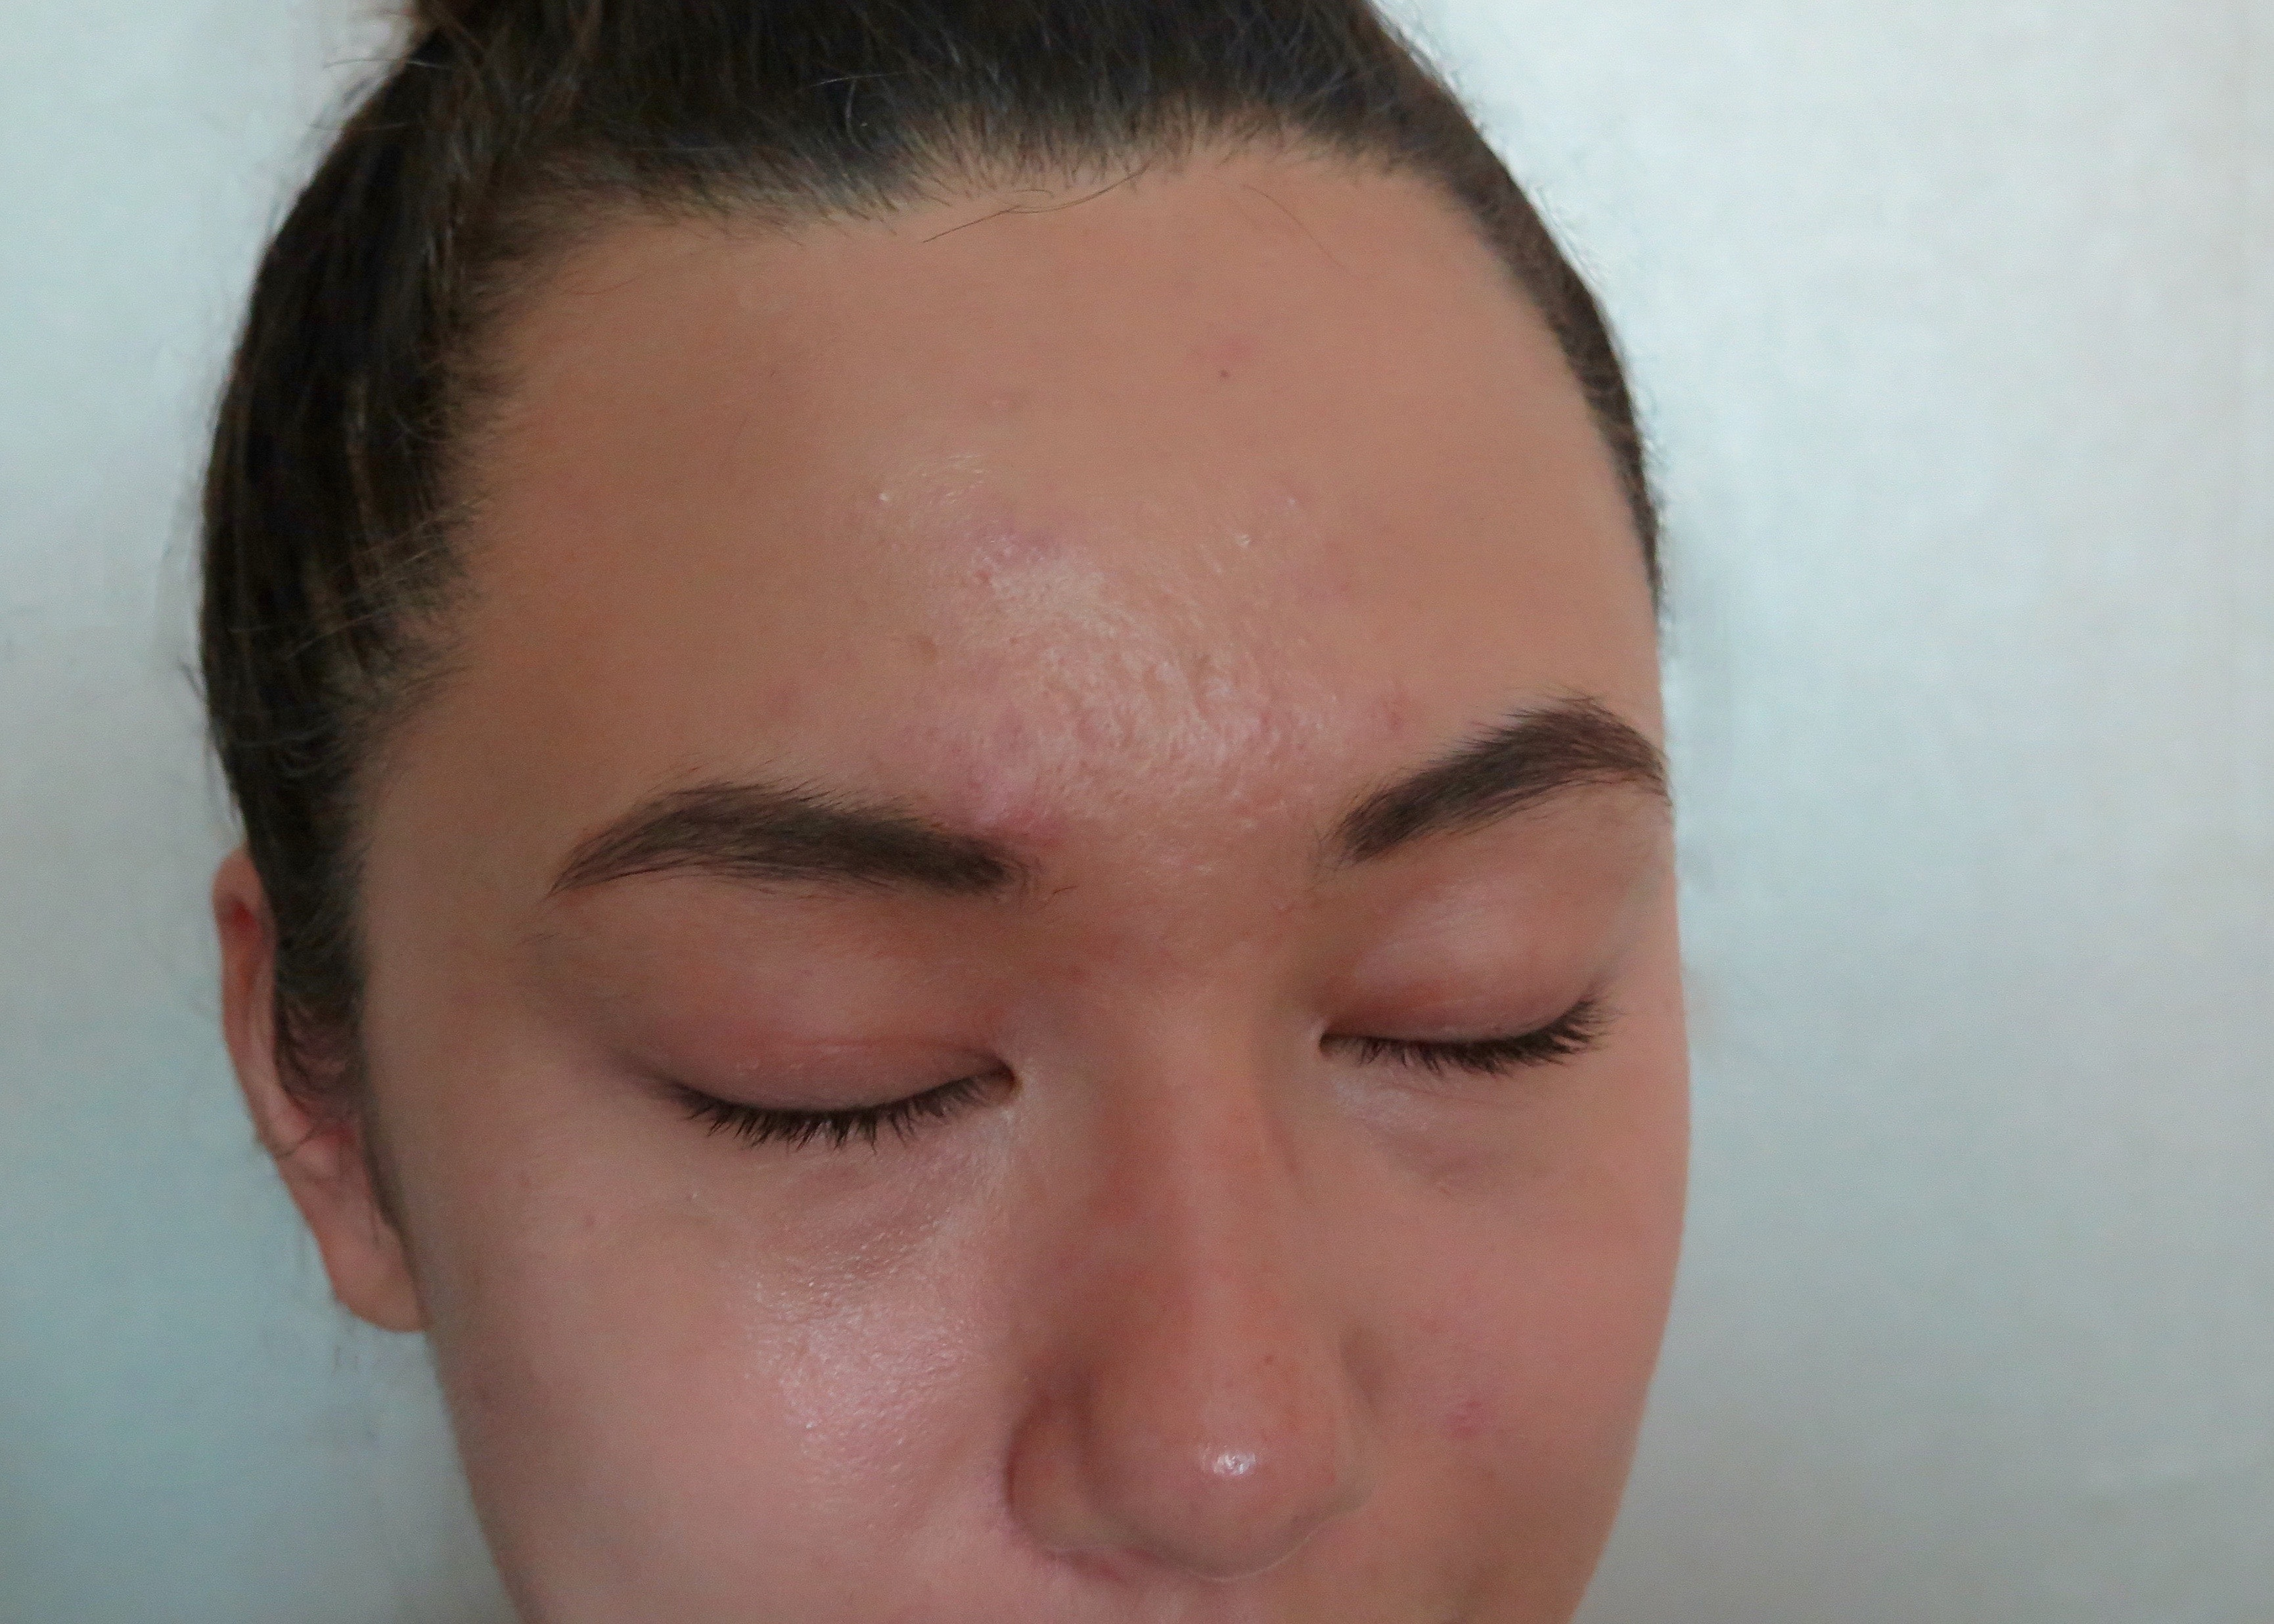 My Experience With A Korean Heated Eyelash Curler Went Up In Smoke